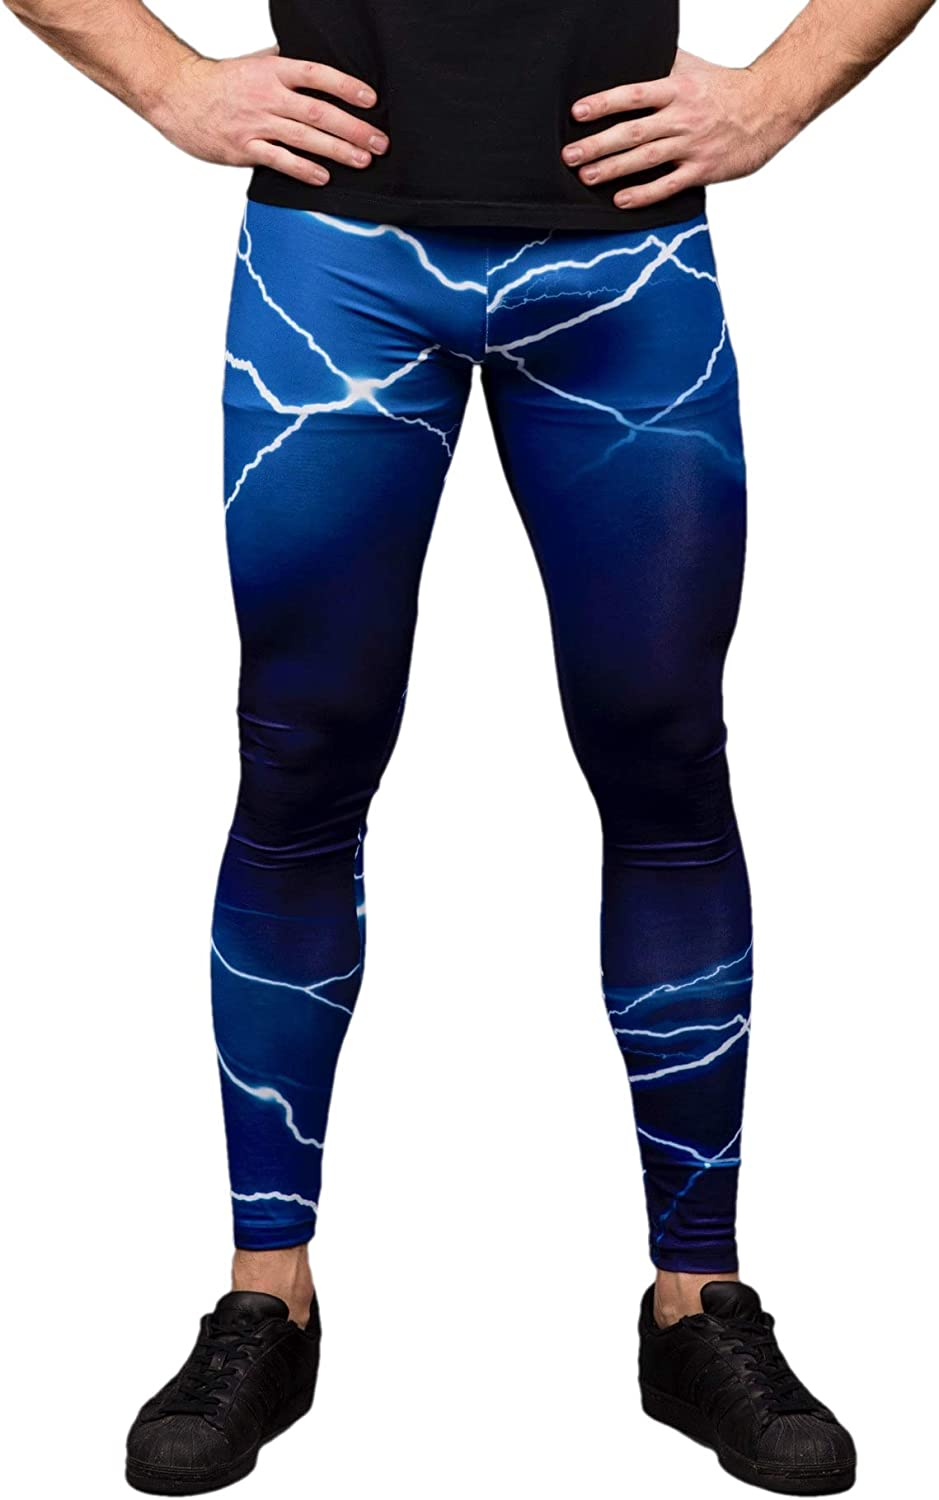 Kapow Men's Leggings - Compression Tights Yoga Base Layer Lightweight Spandex Colorful Printed Festival Meggings Lounge Pants